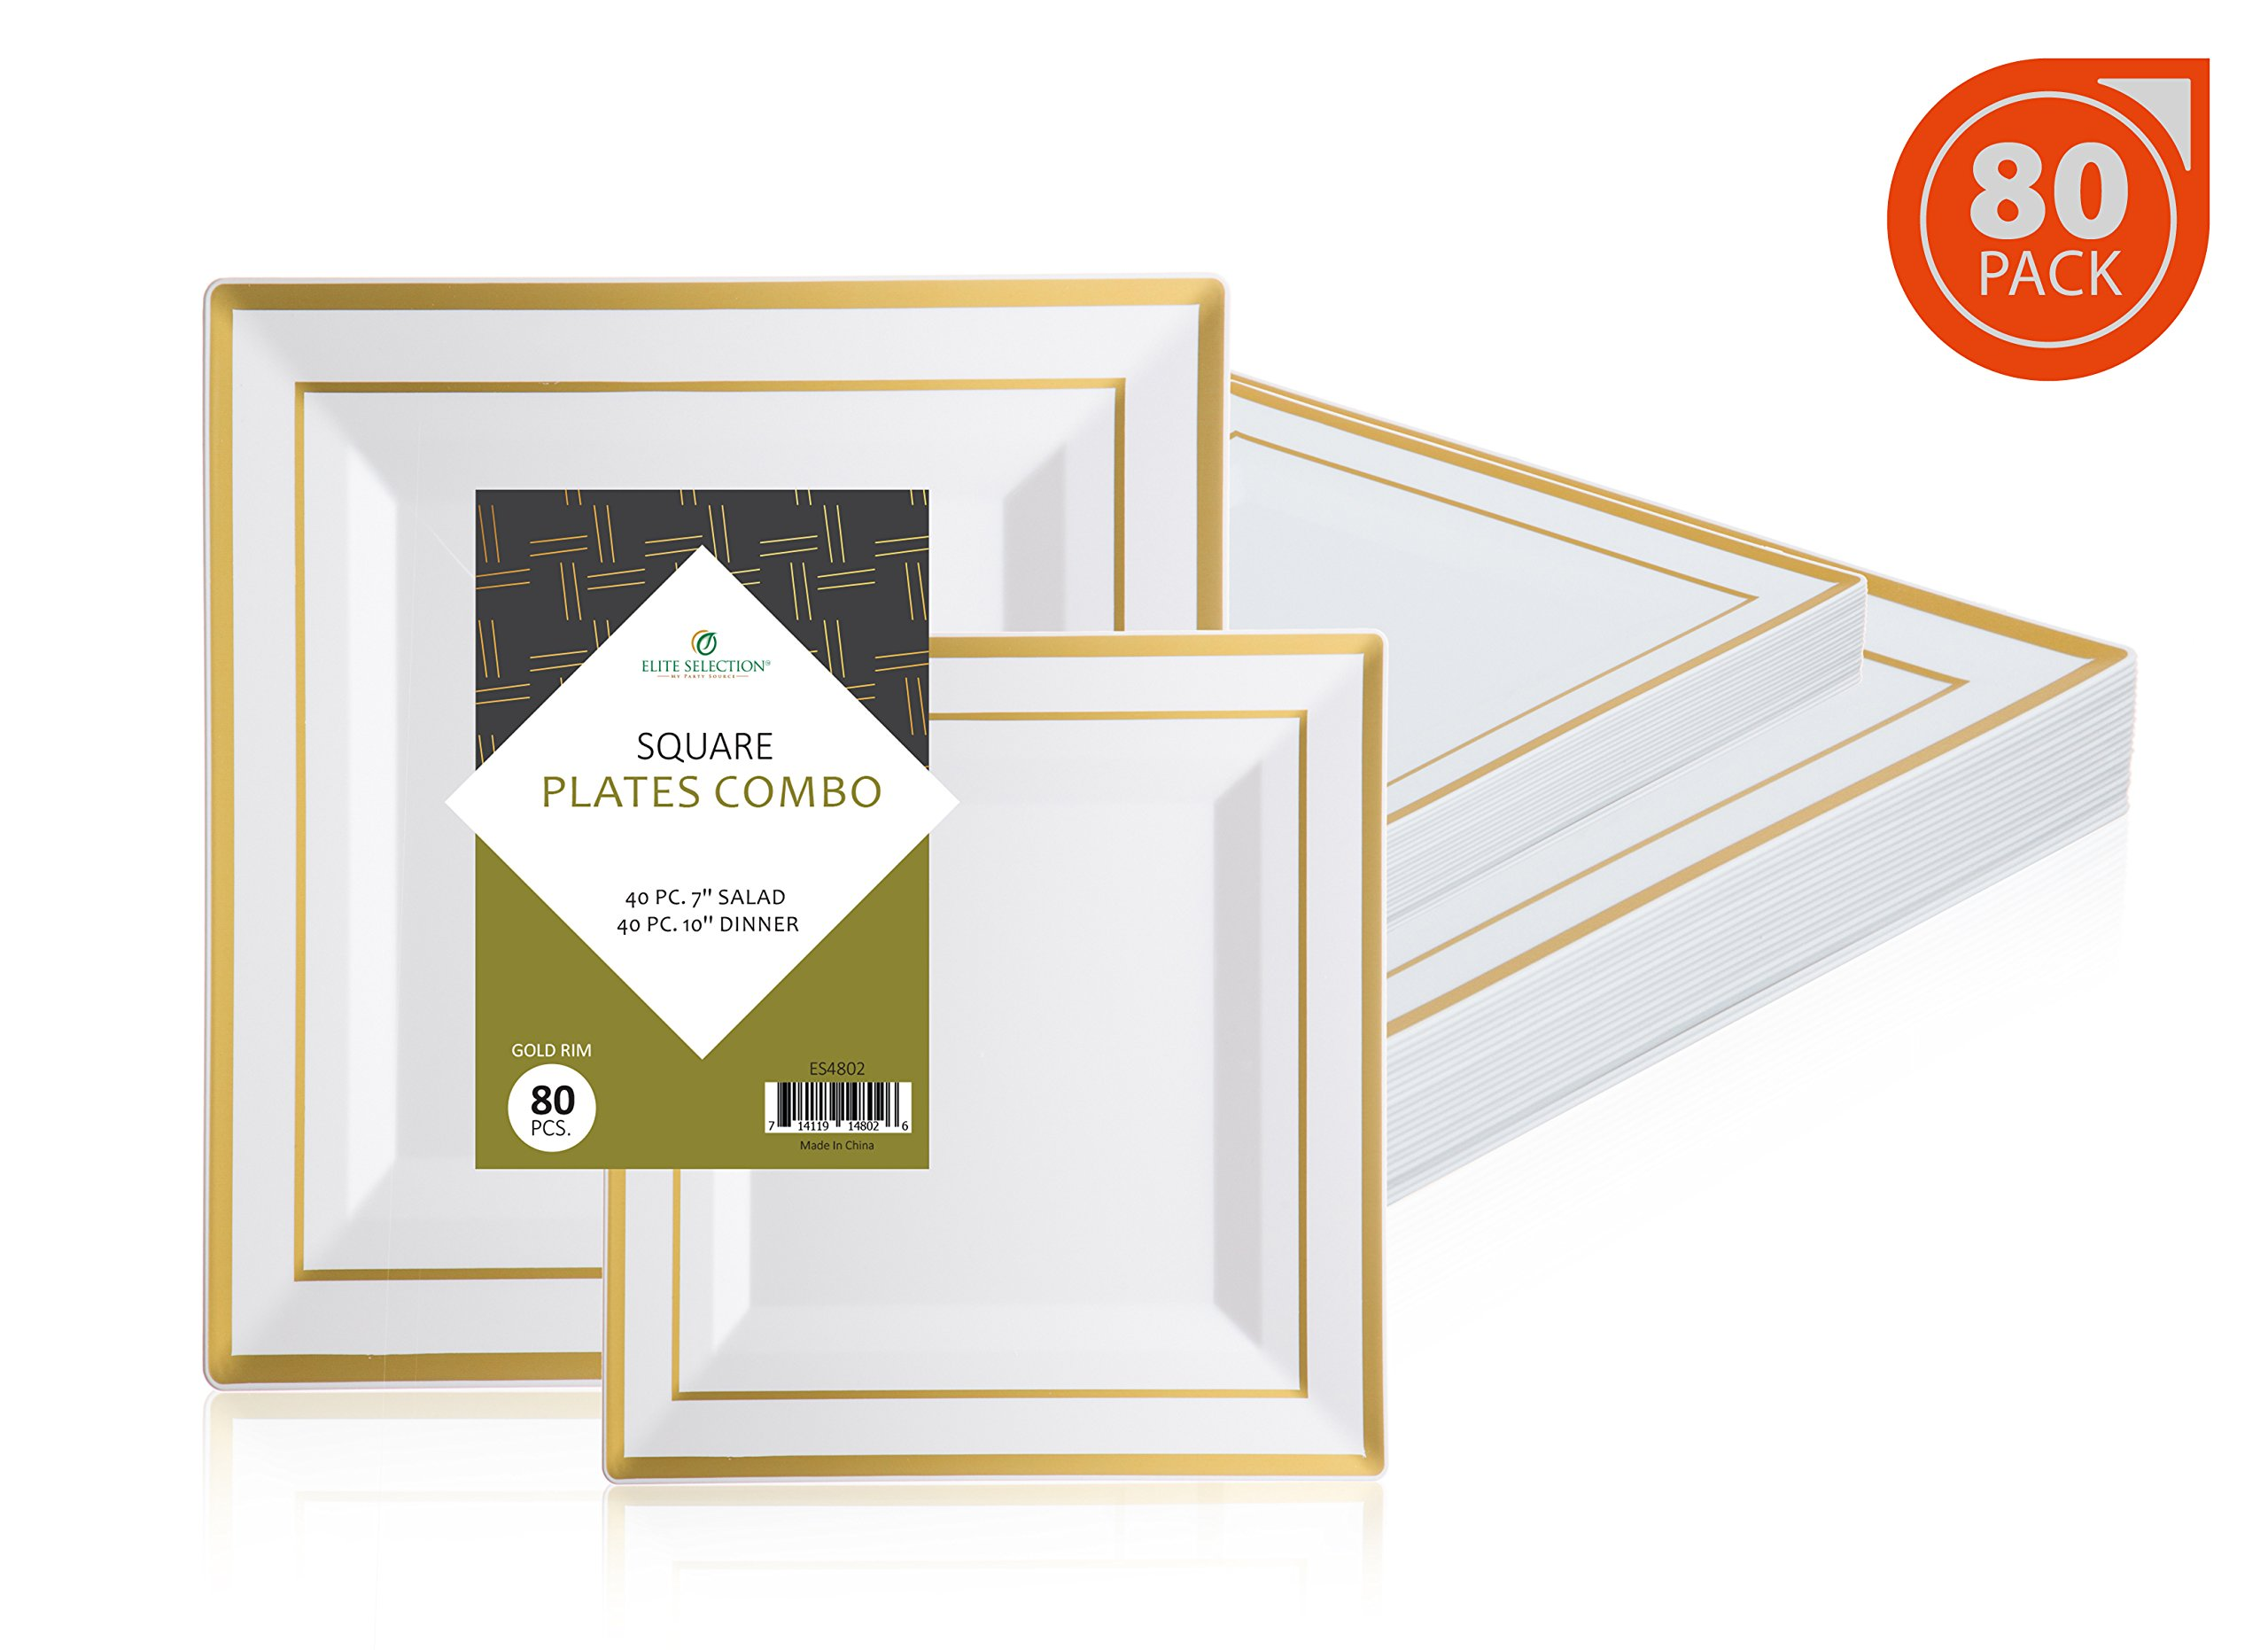 ''Elite Selection'' Square Plates Set Of 80 White Party Plastic Plates With Gold Rim Includes 40 Dinner Plates 10 Inch And 40 Salad/Dessert Plates 7 Inch